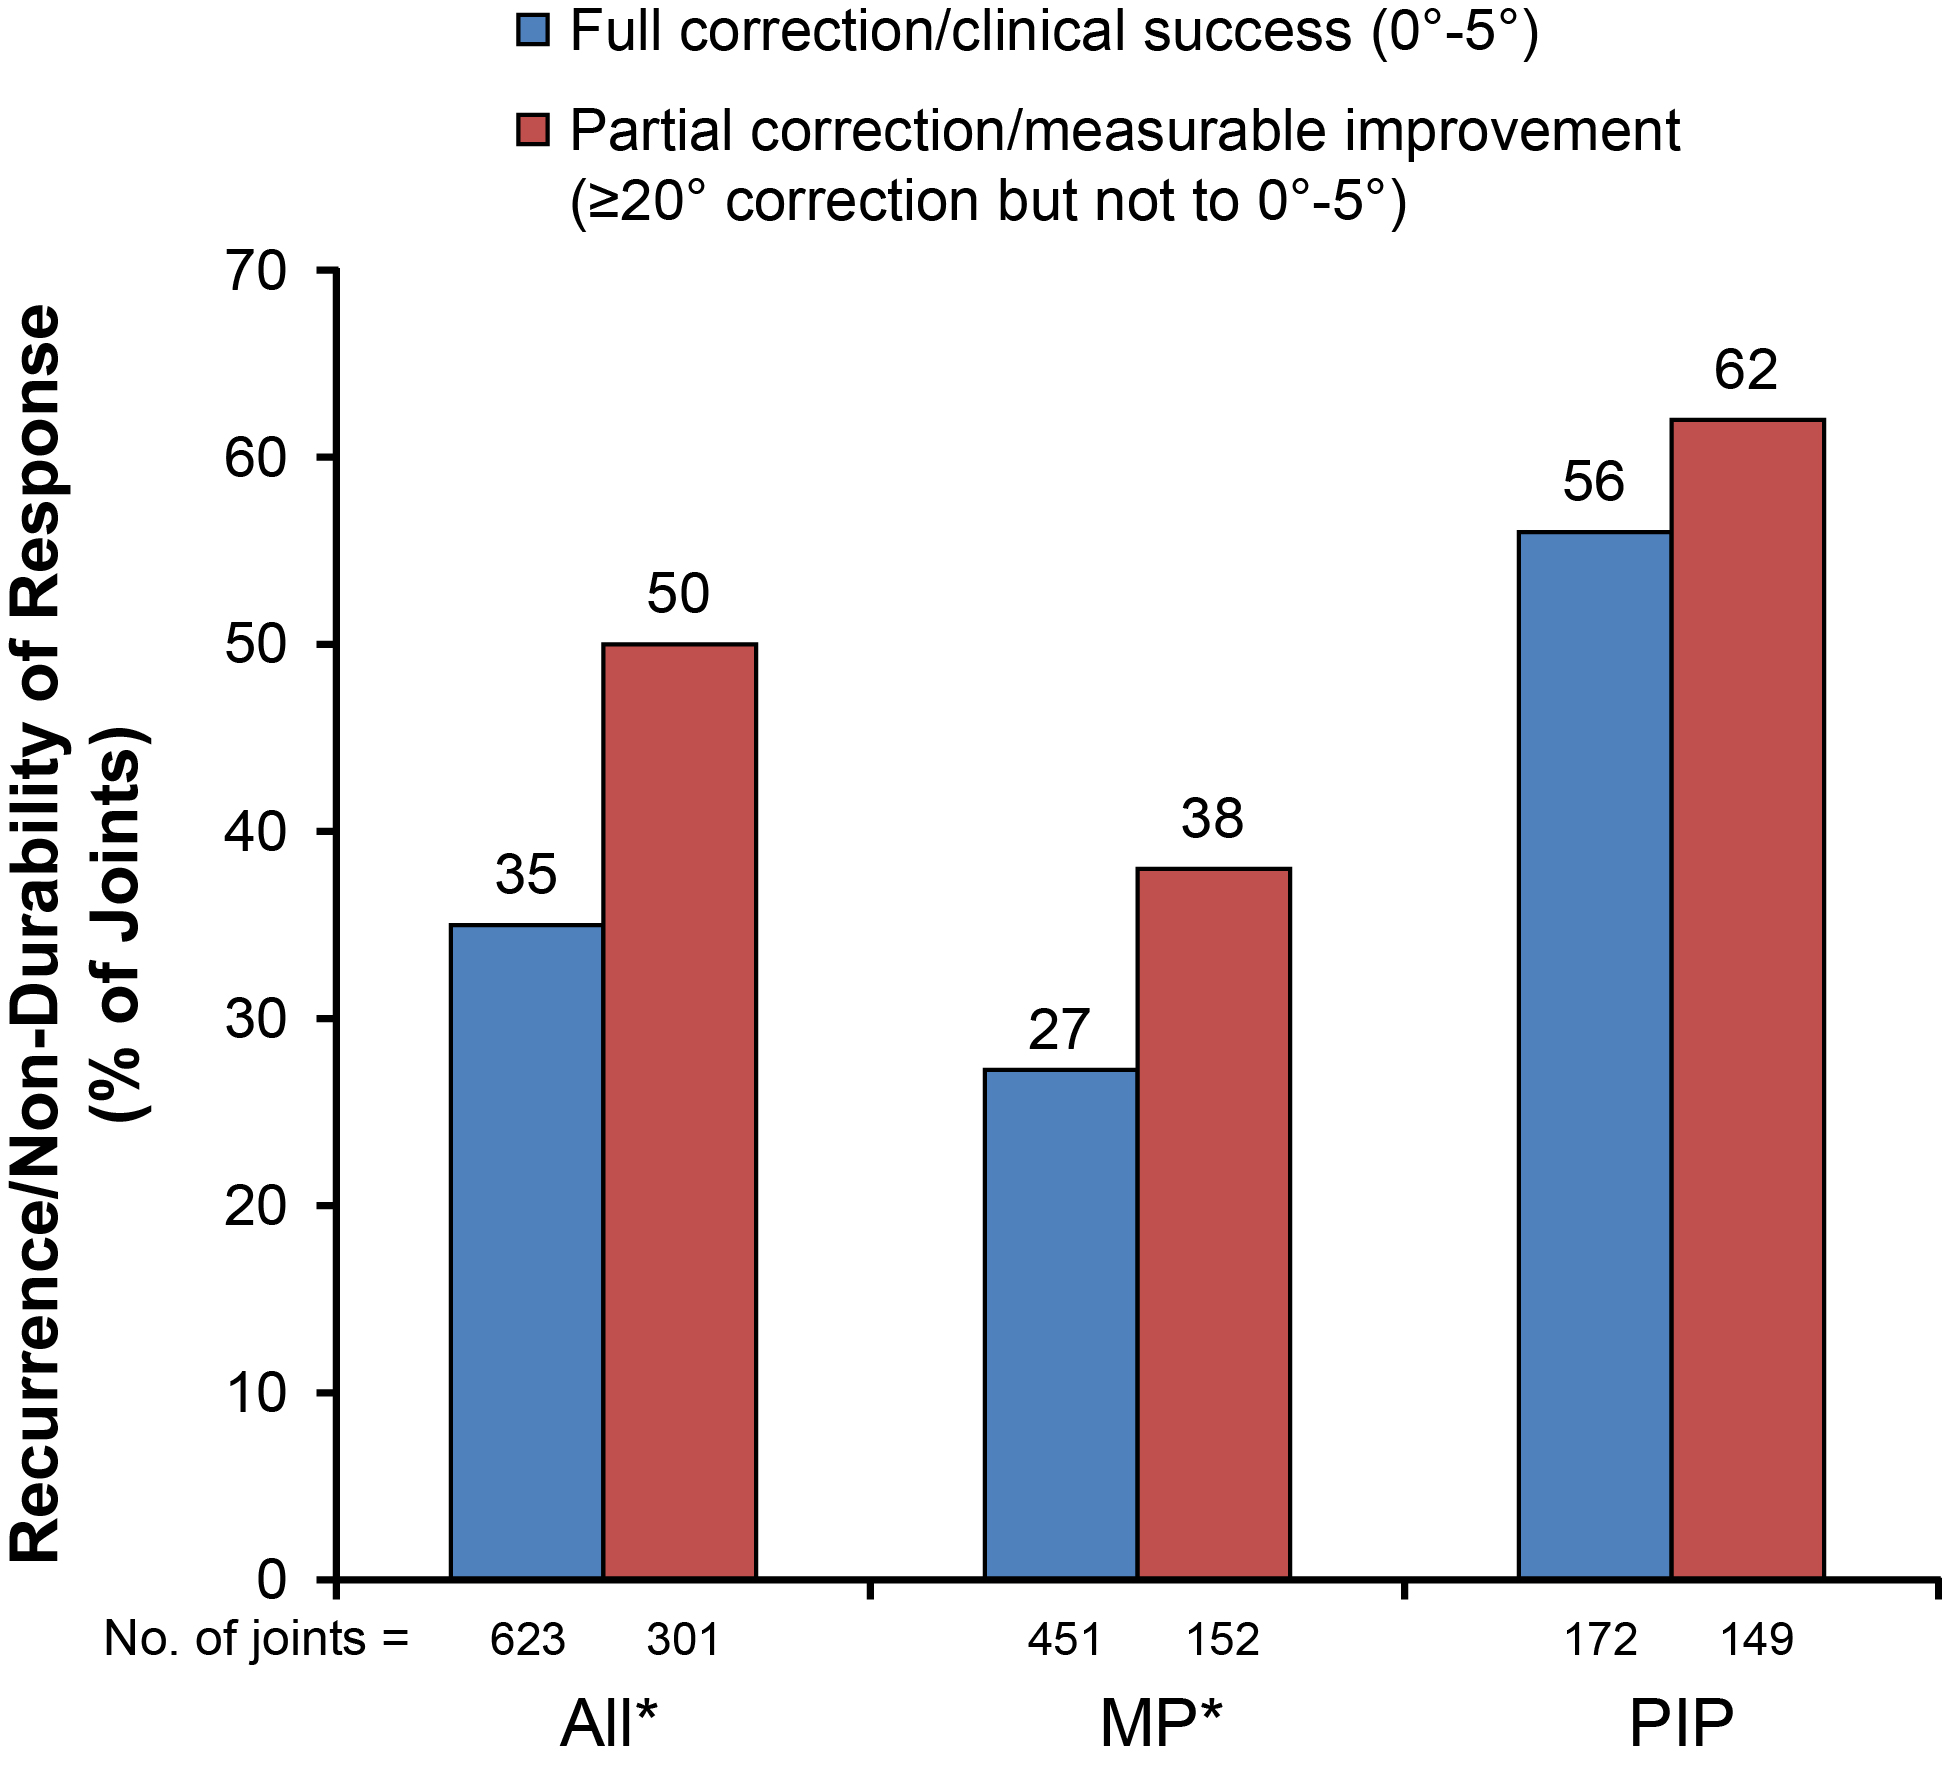 Figure 11: Recurrence and nondurability of response in successfully treated (n=623) and measurably improved (n=301) joints by year of follow-up